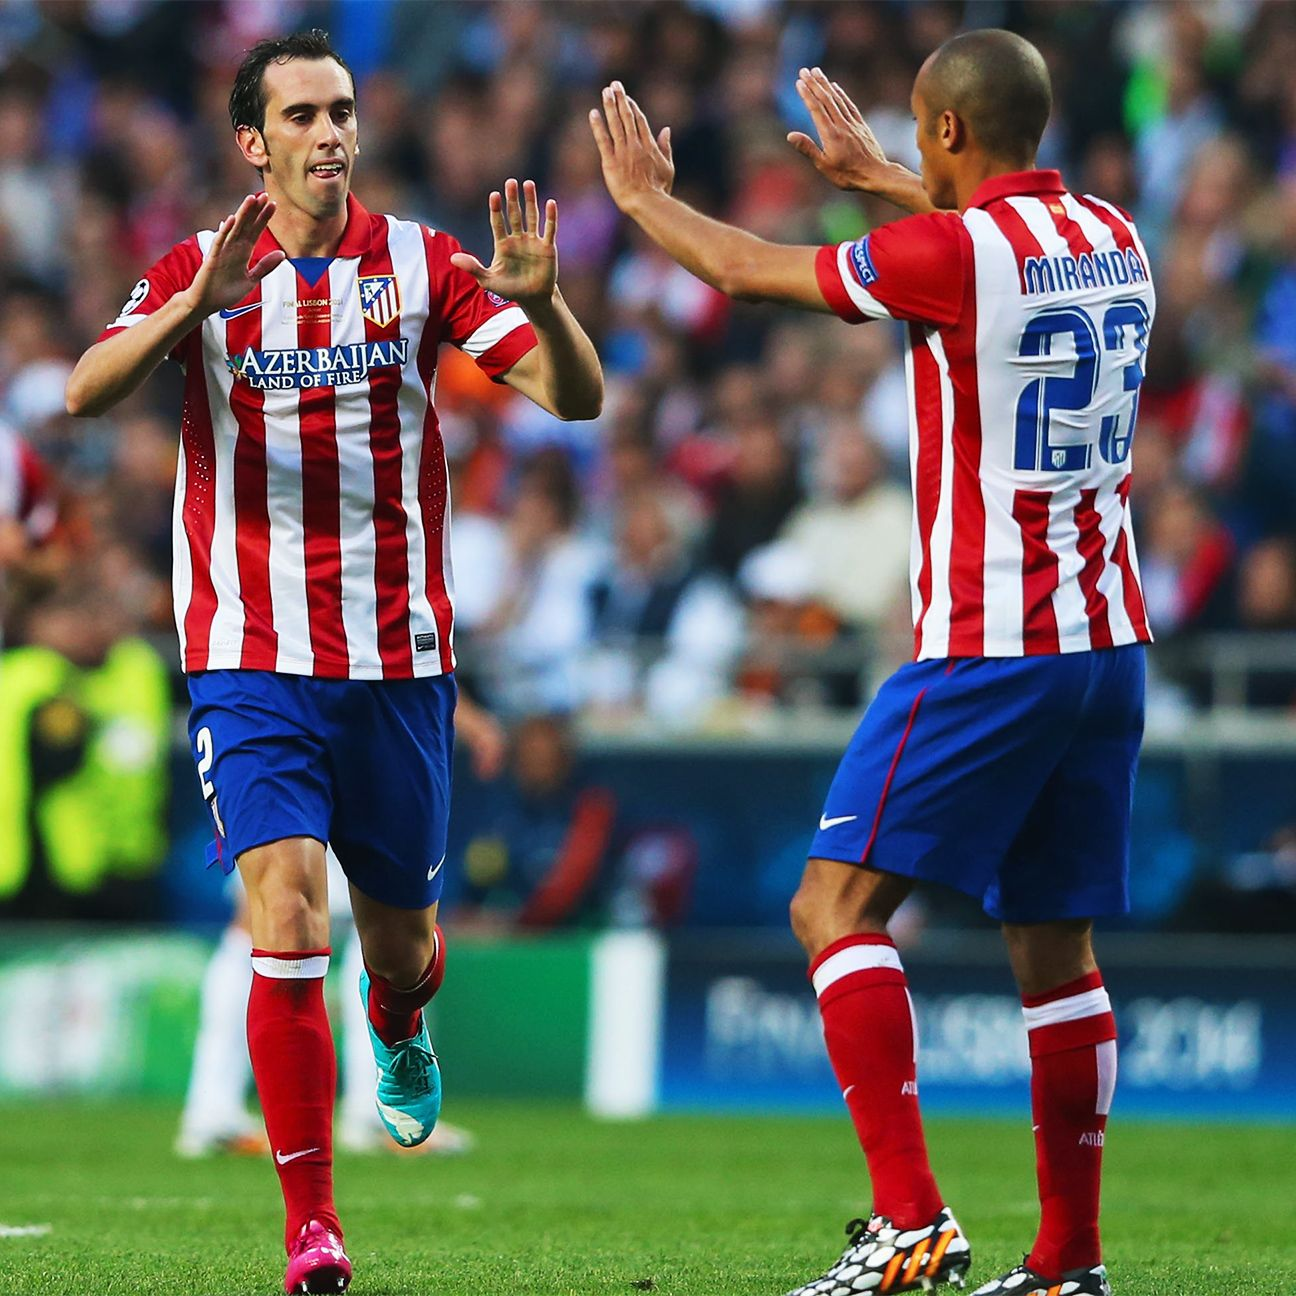 Atletico's vaunted centre-back partnership of Diego Godin, left, and Joao Miranda, right, have struggled to match last season's stellar form.